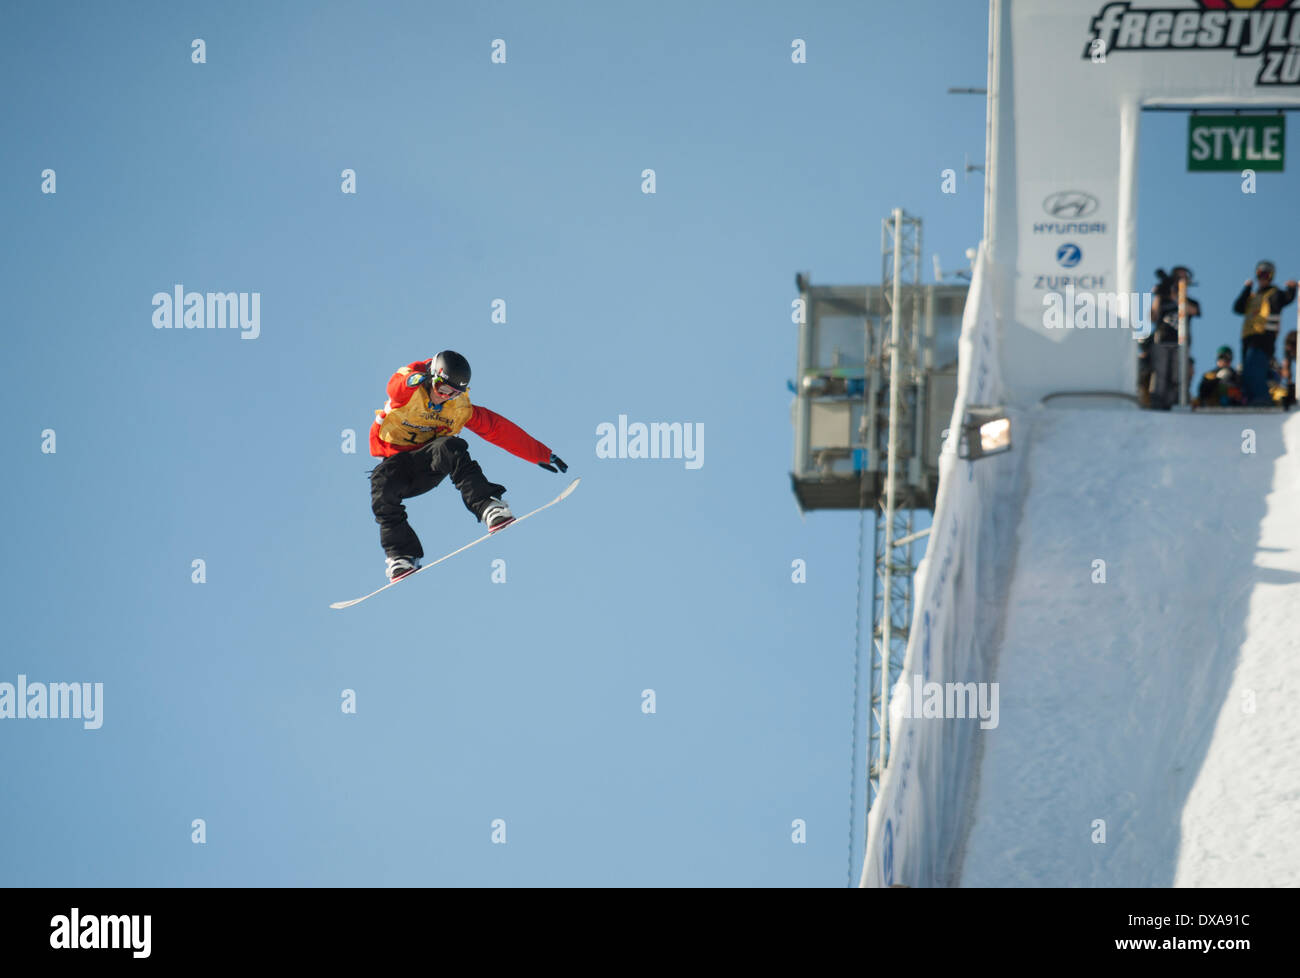 Freestyle snowboard professionals show spectacular jumps and flips at the 2013 freestyle.ch style session contest in Zurich. - Stock Image